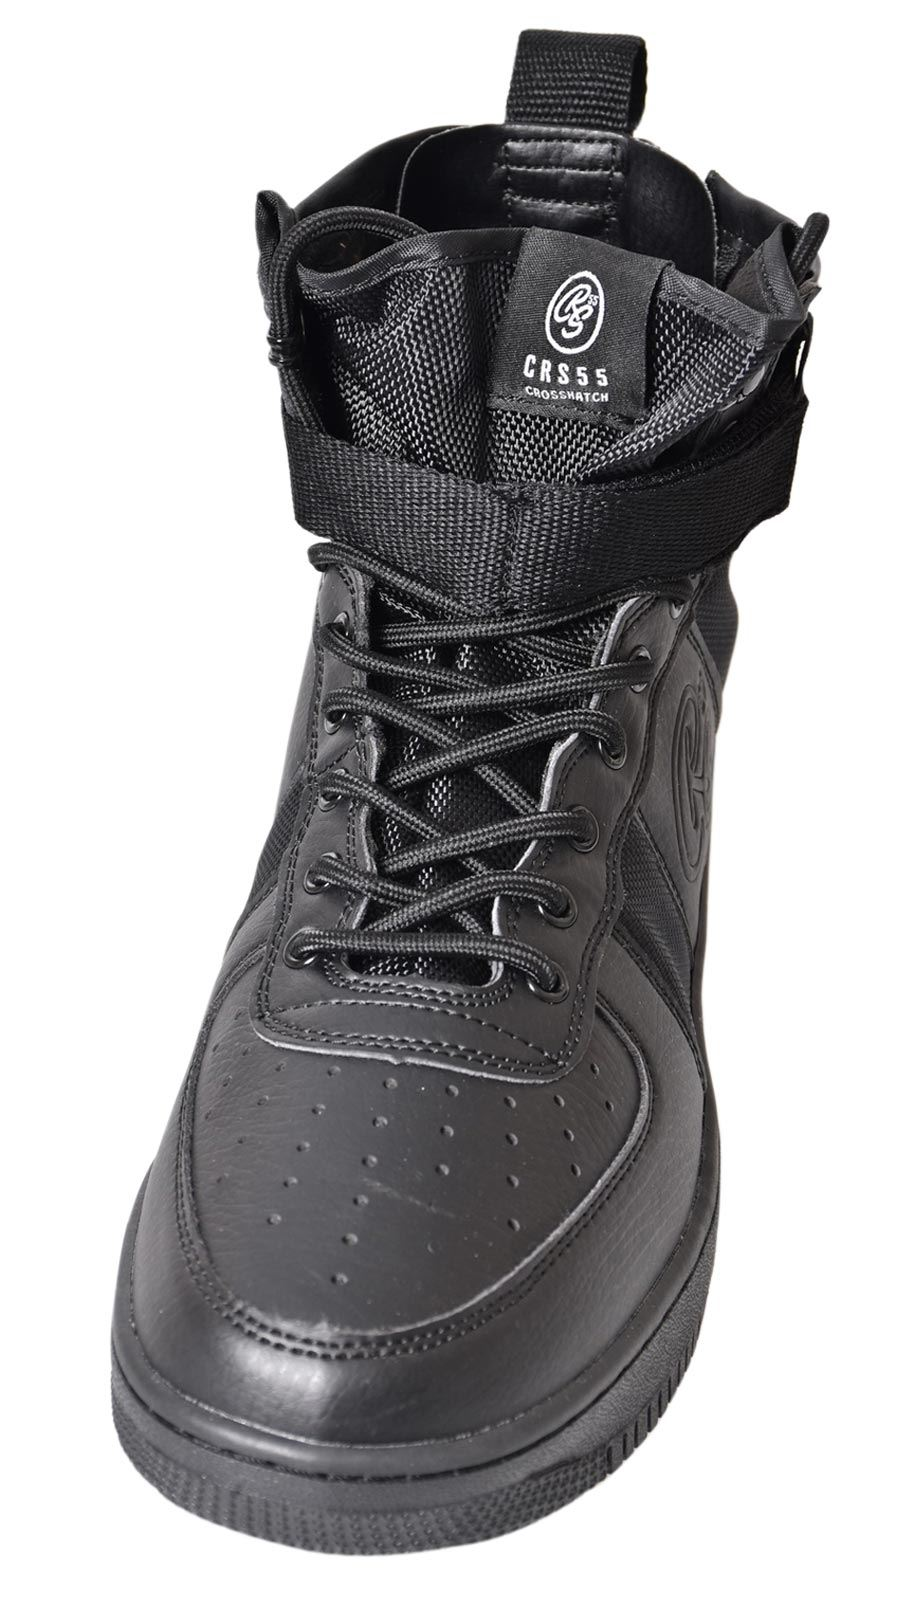 Mens-New-Crosshatch-Fleetfoot-Trainers-Hi-Top-Ankle-Boots-Lace-up-Comfy-Shoes thumbnail 6